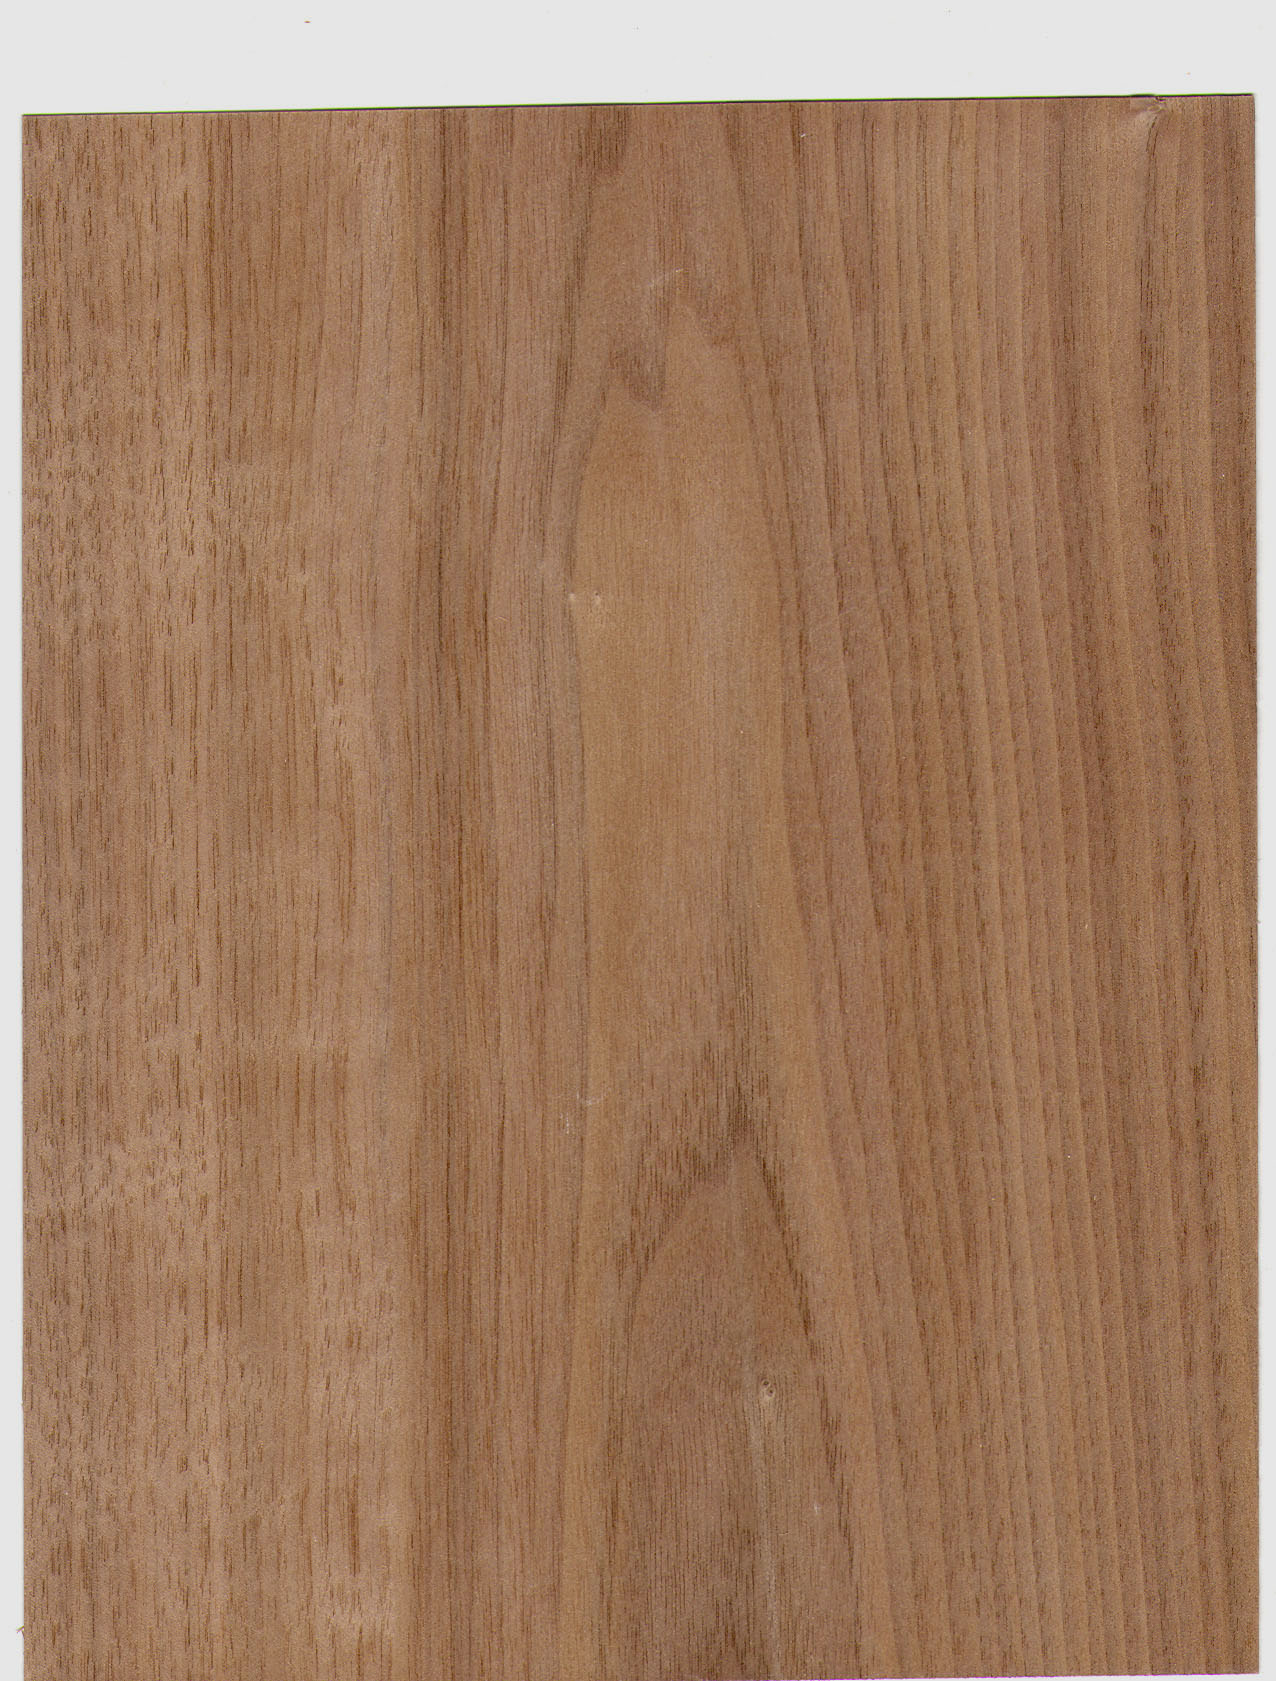 Wood texture laminate download photo background